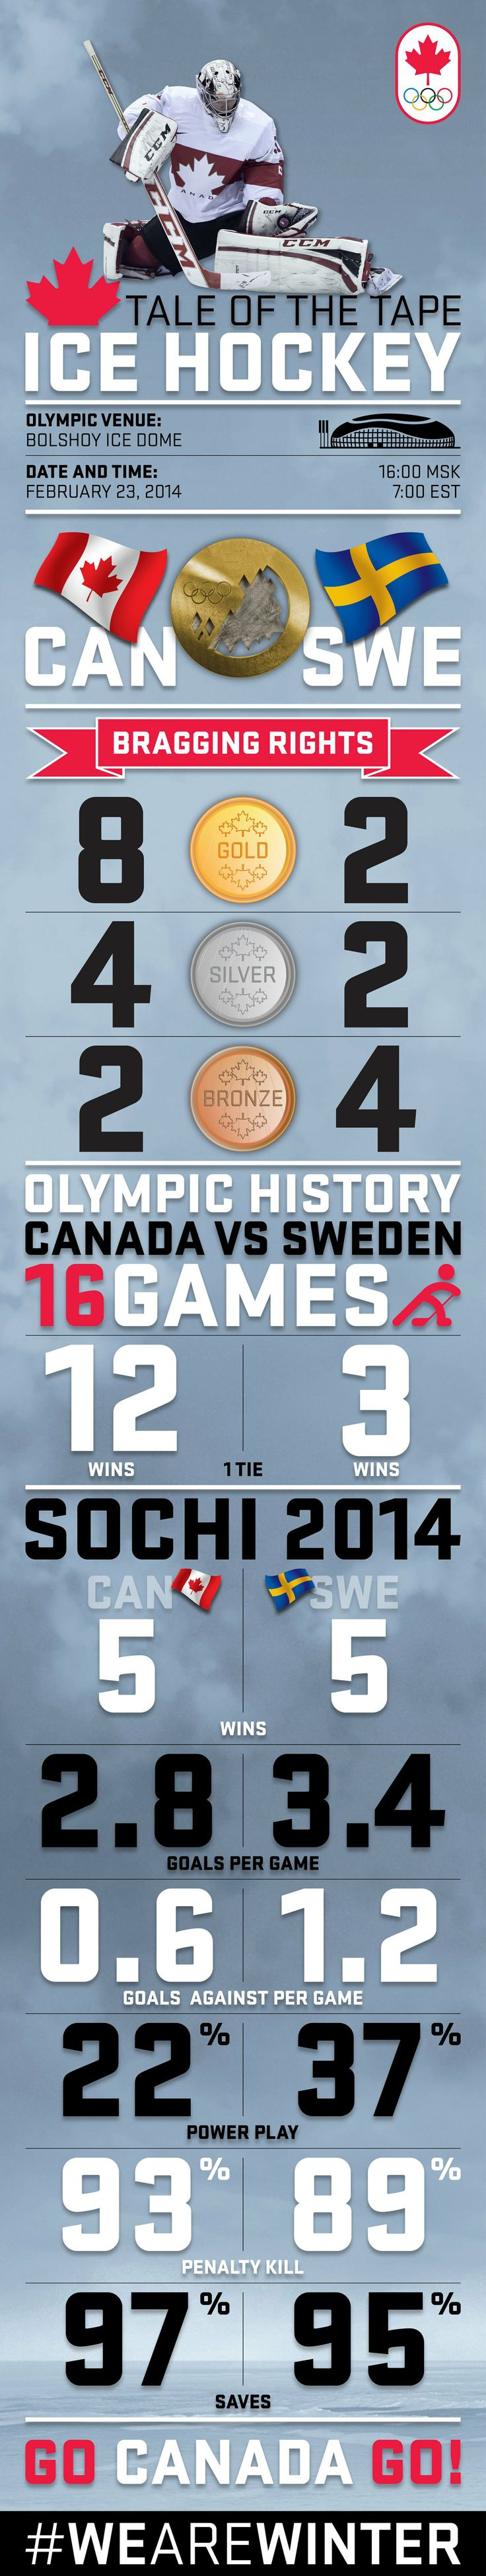 Ice hockey - Sochi 2014 - Canada - Sweden - #wearewinter